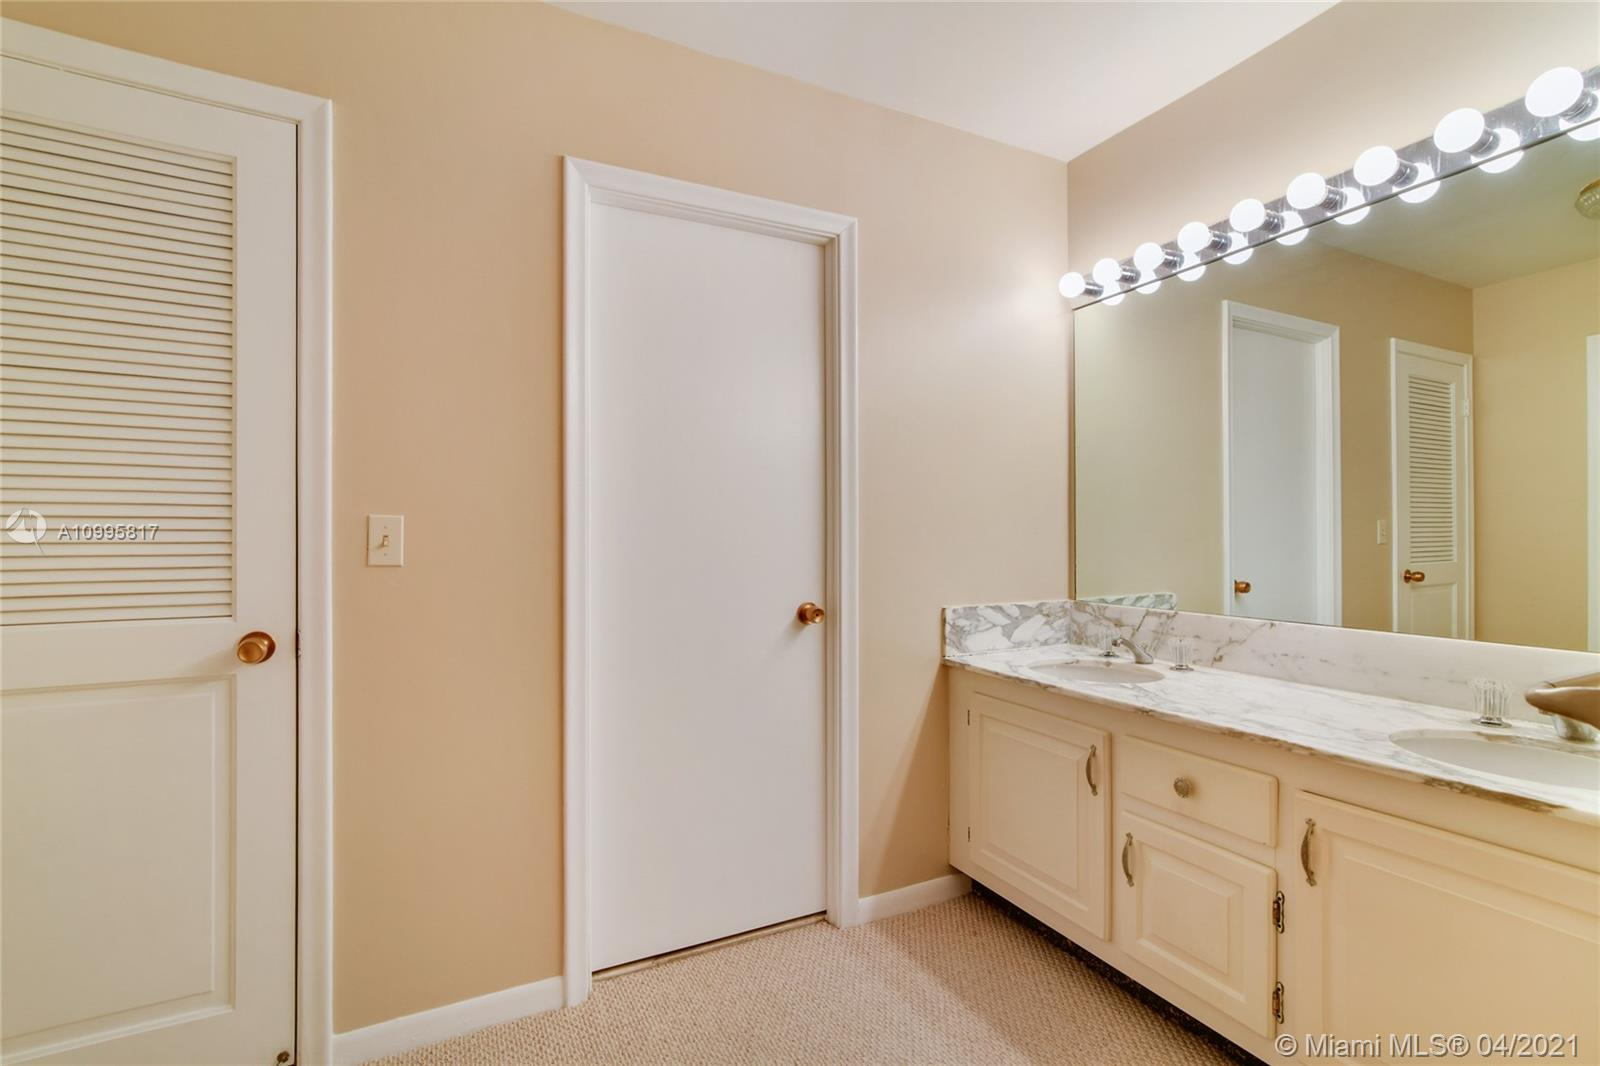 Photo of 9801 Collins Ave #5H, Bal Harbour, Florida, 33154 - Large master bedroom